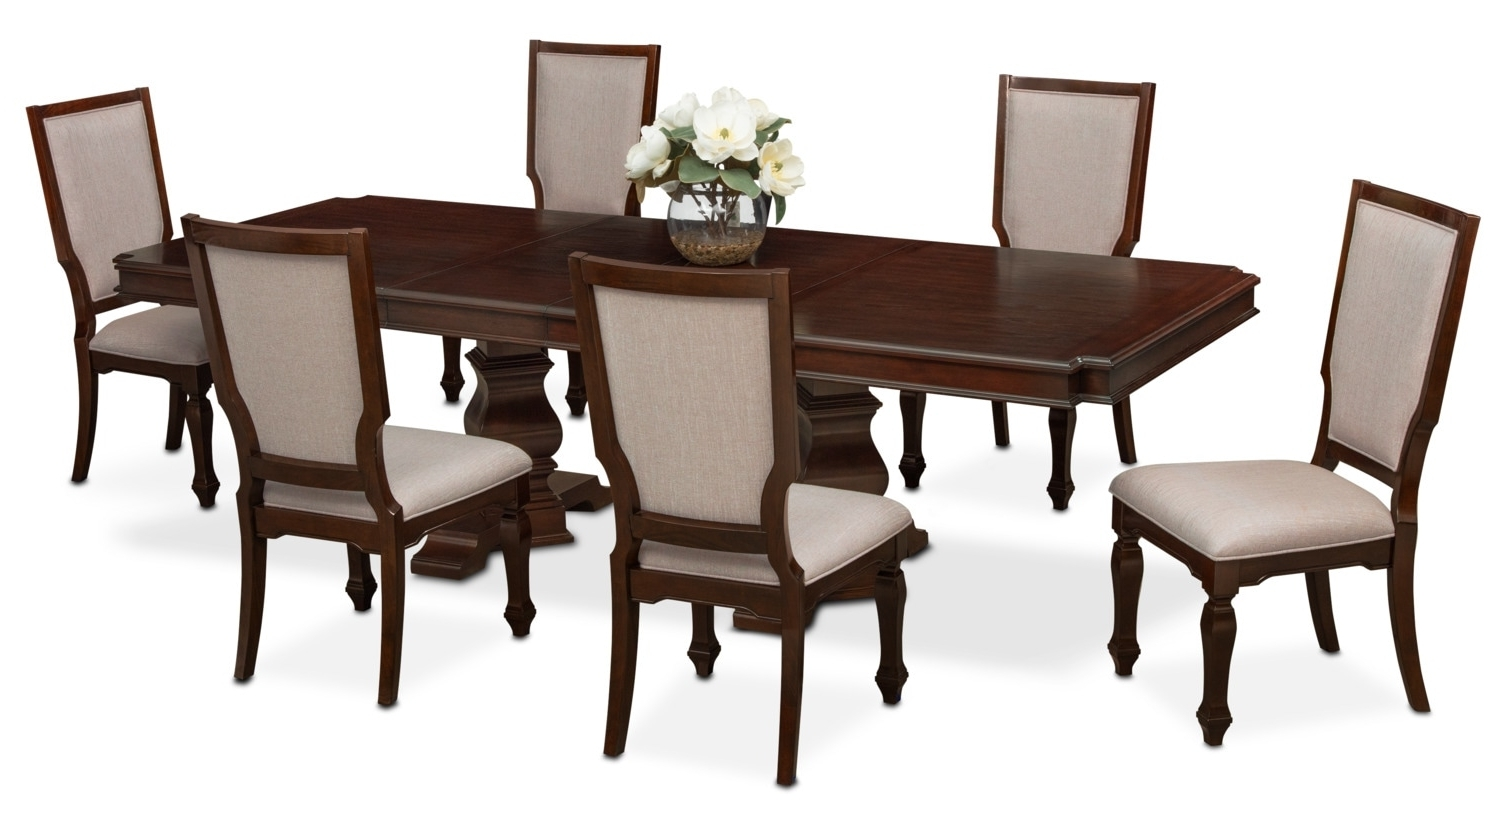 Famous Vienna Dining Tables Intended For Vienna Dining Table And 6 Upholstered Side Chairs – Merlot (View 5 of 25)